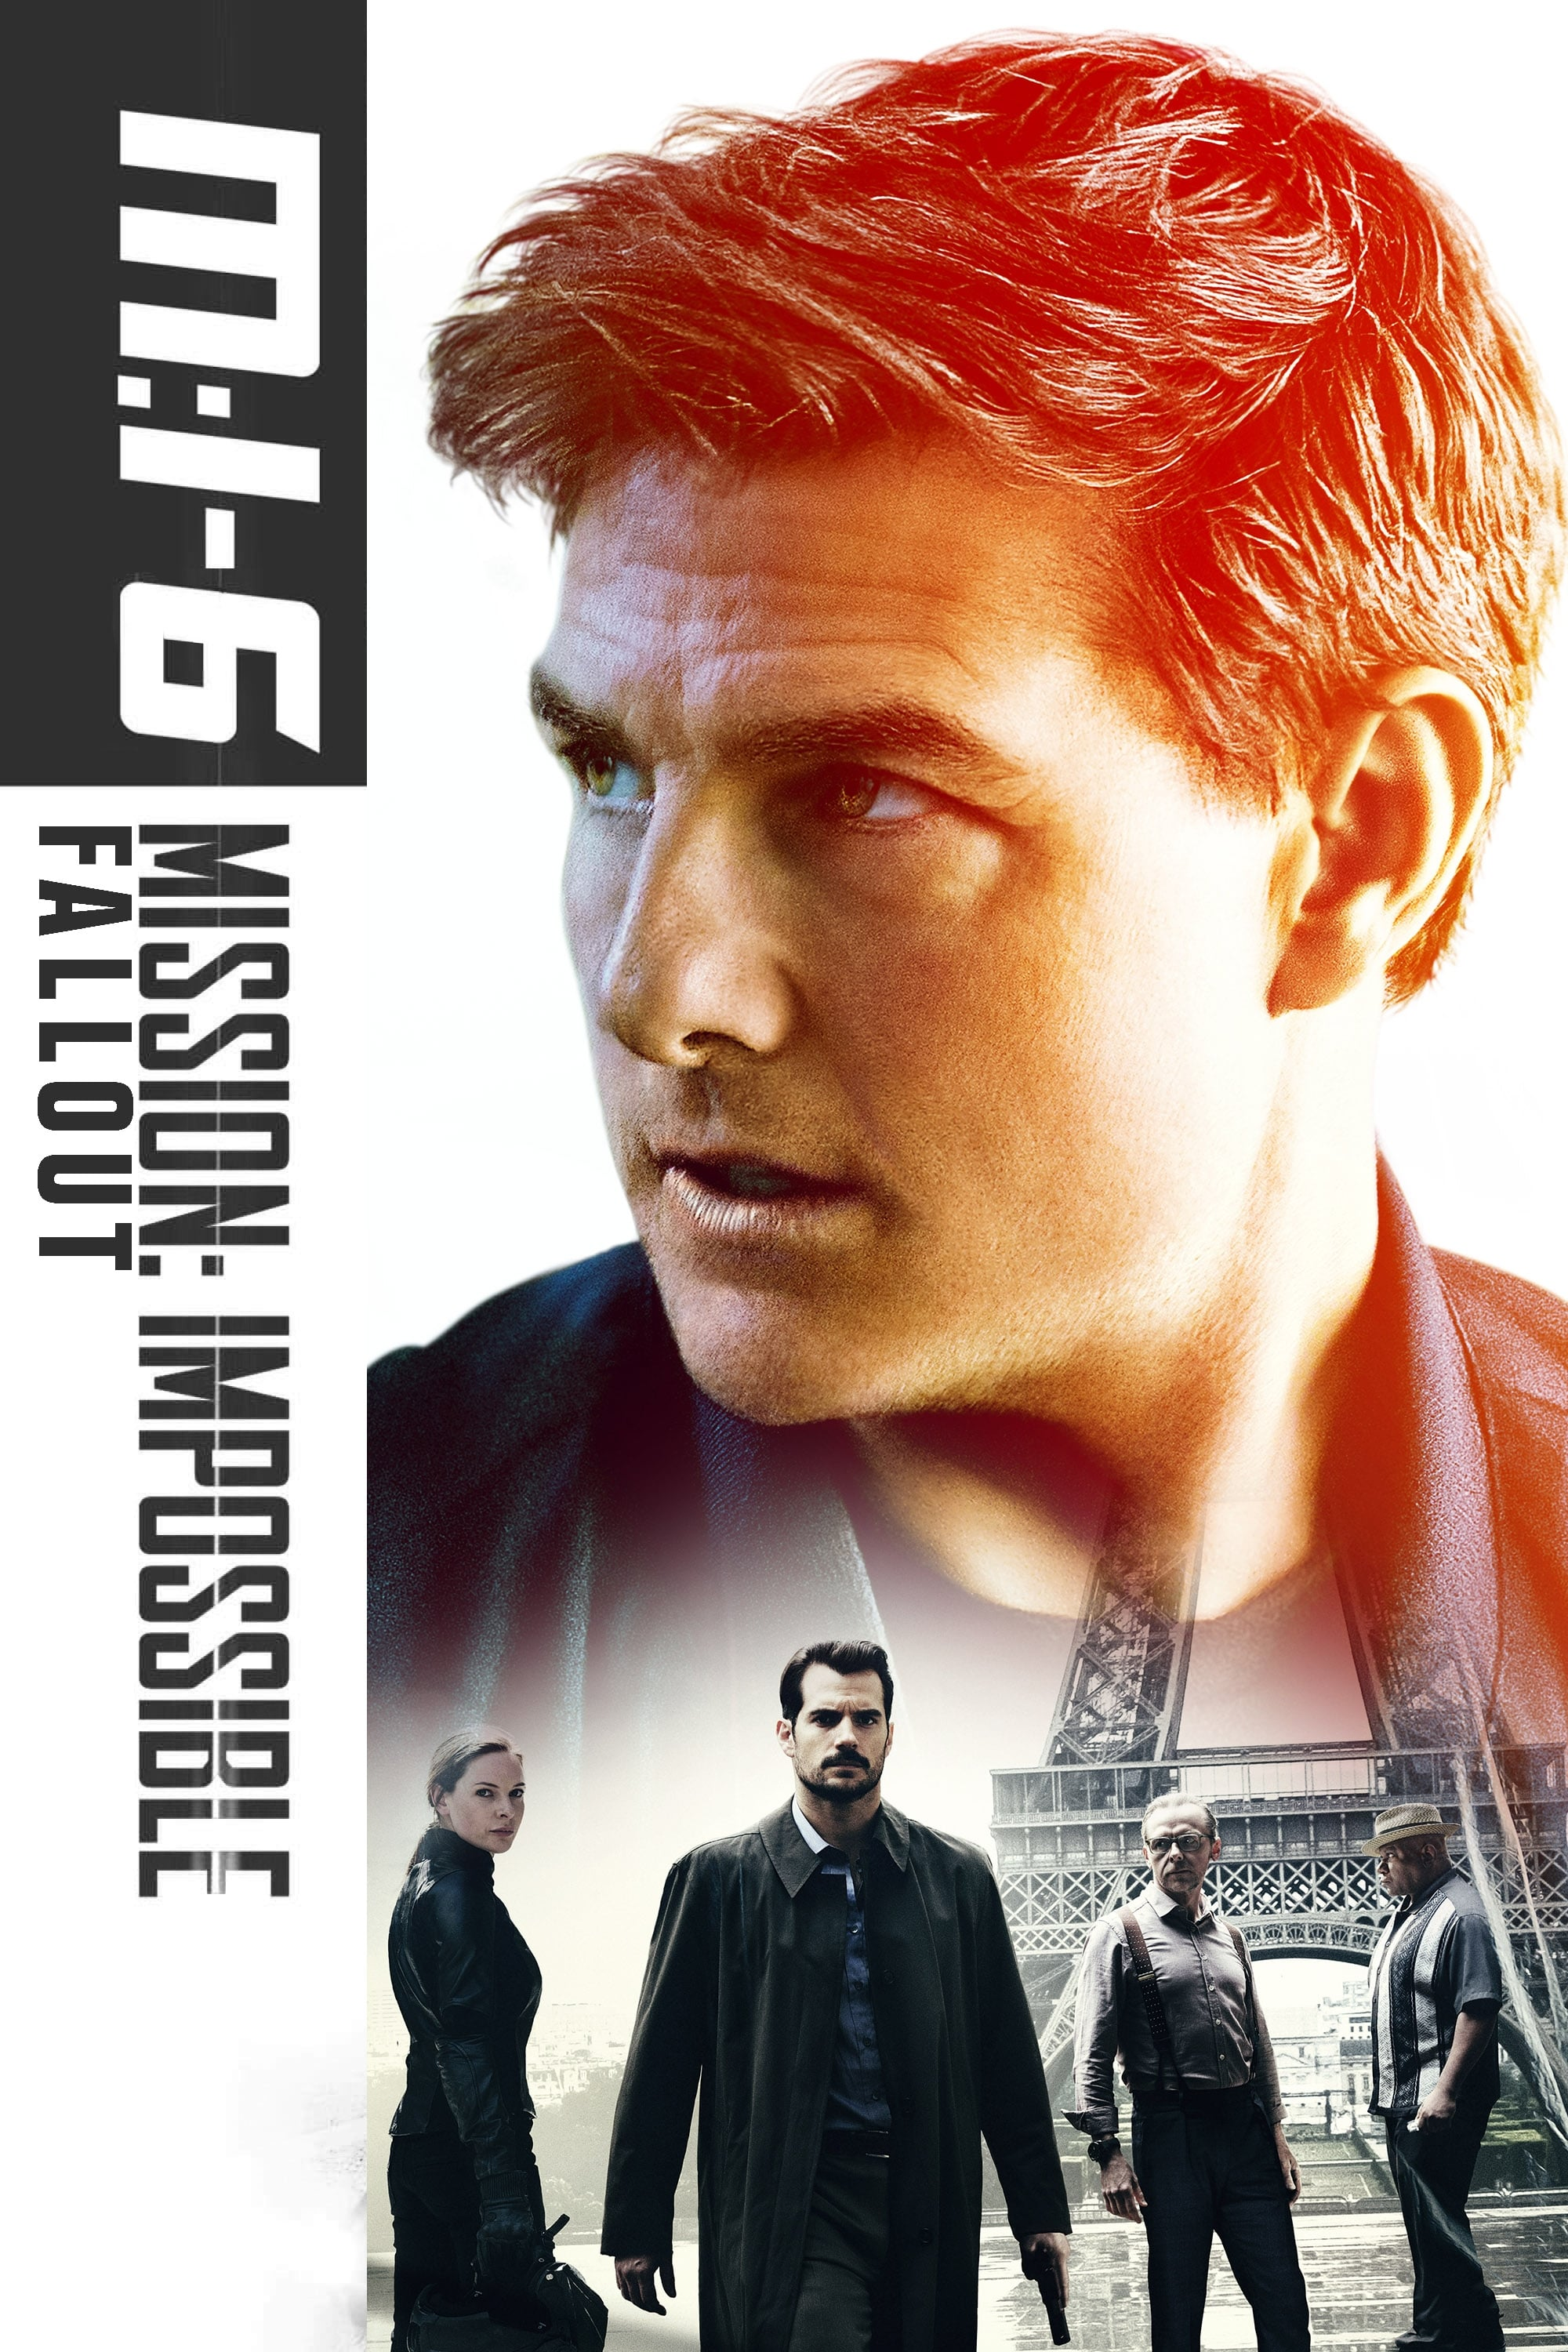 Mission Impossible Fallout 2018 Posters The Movie